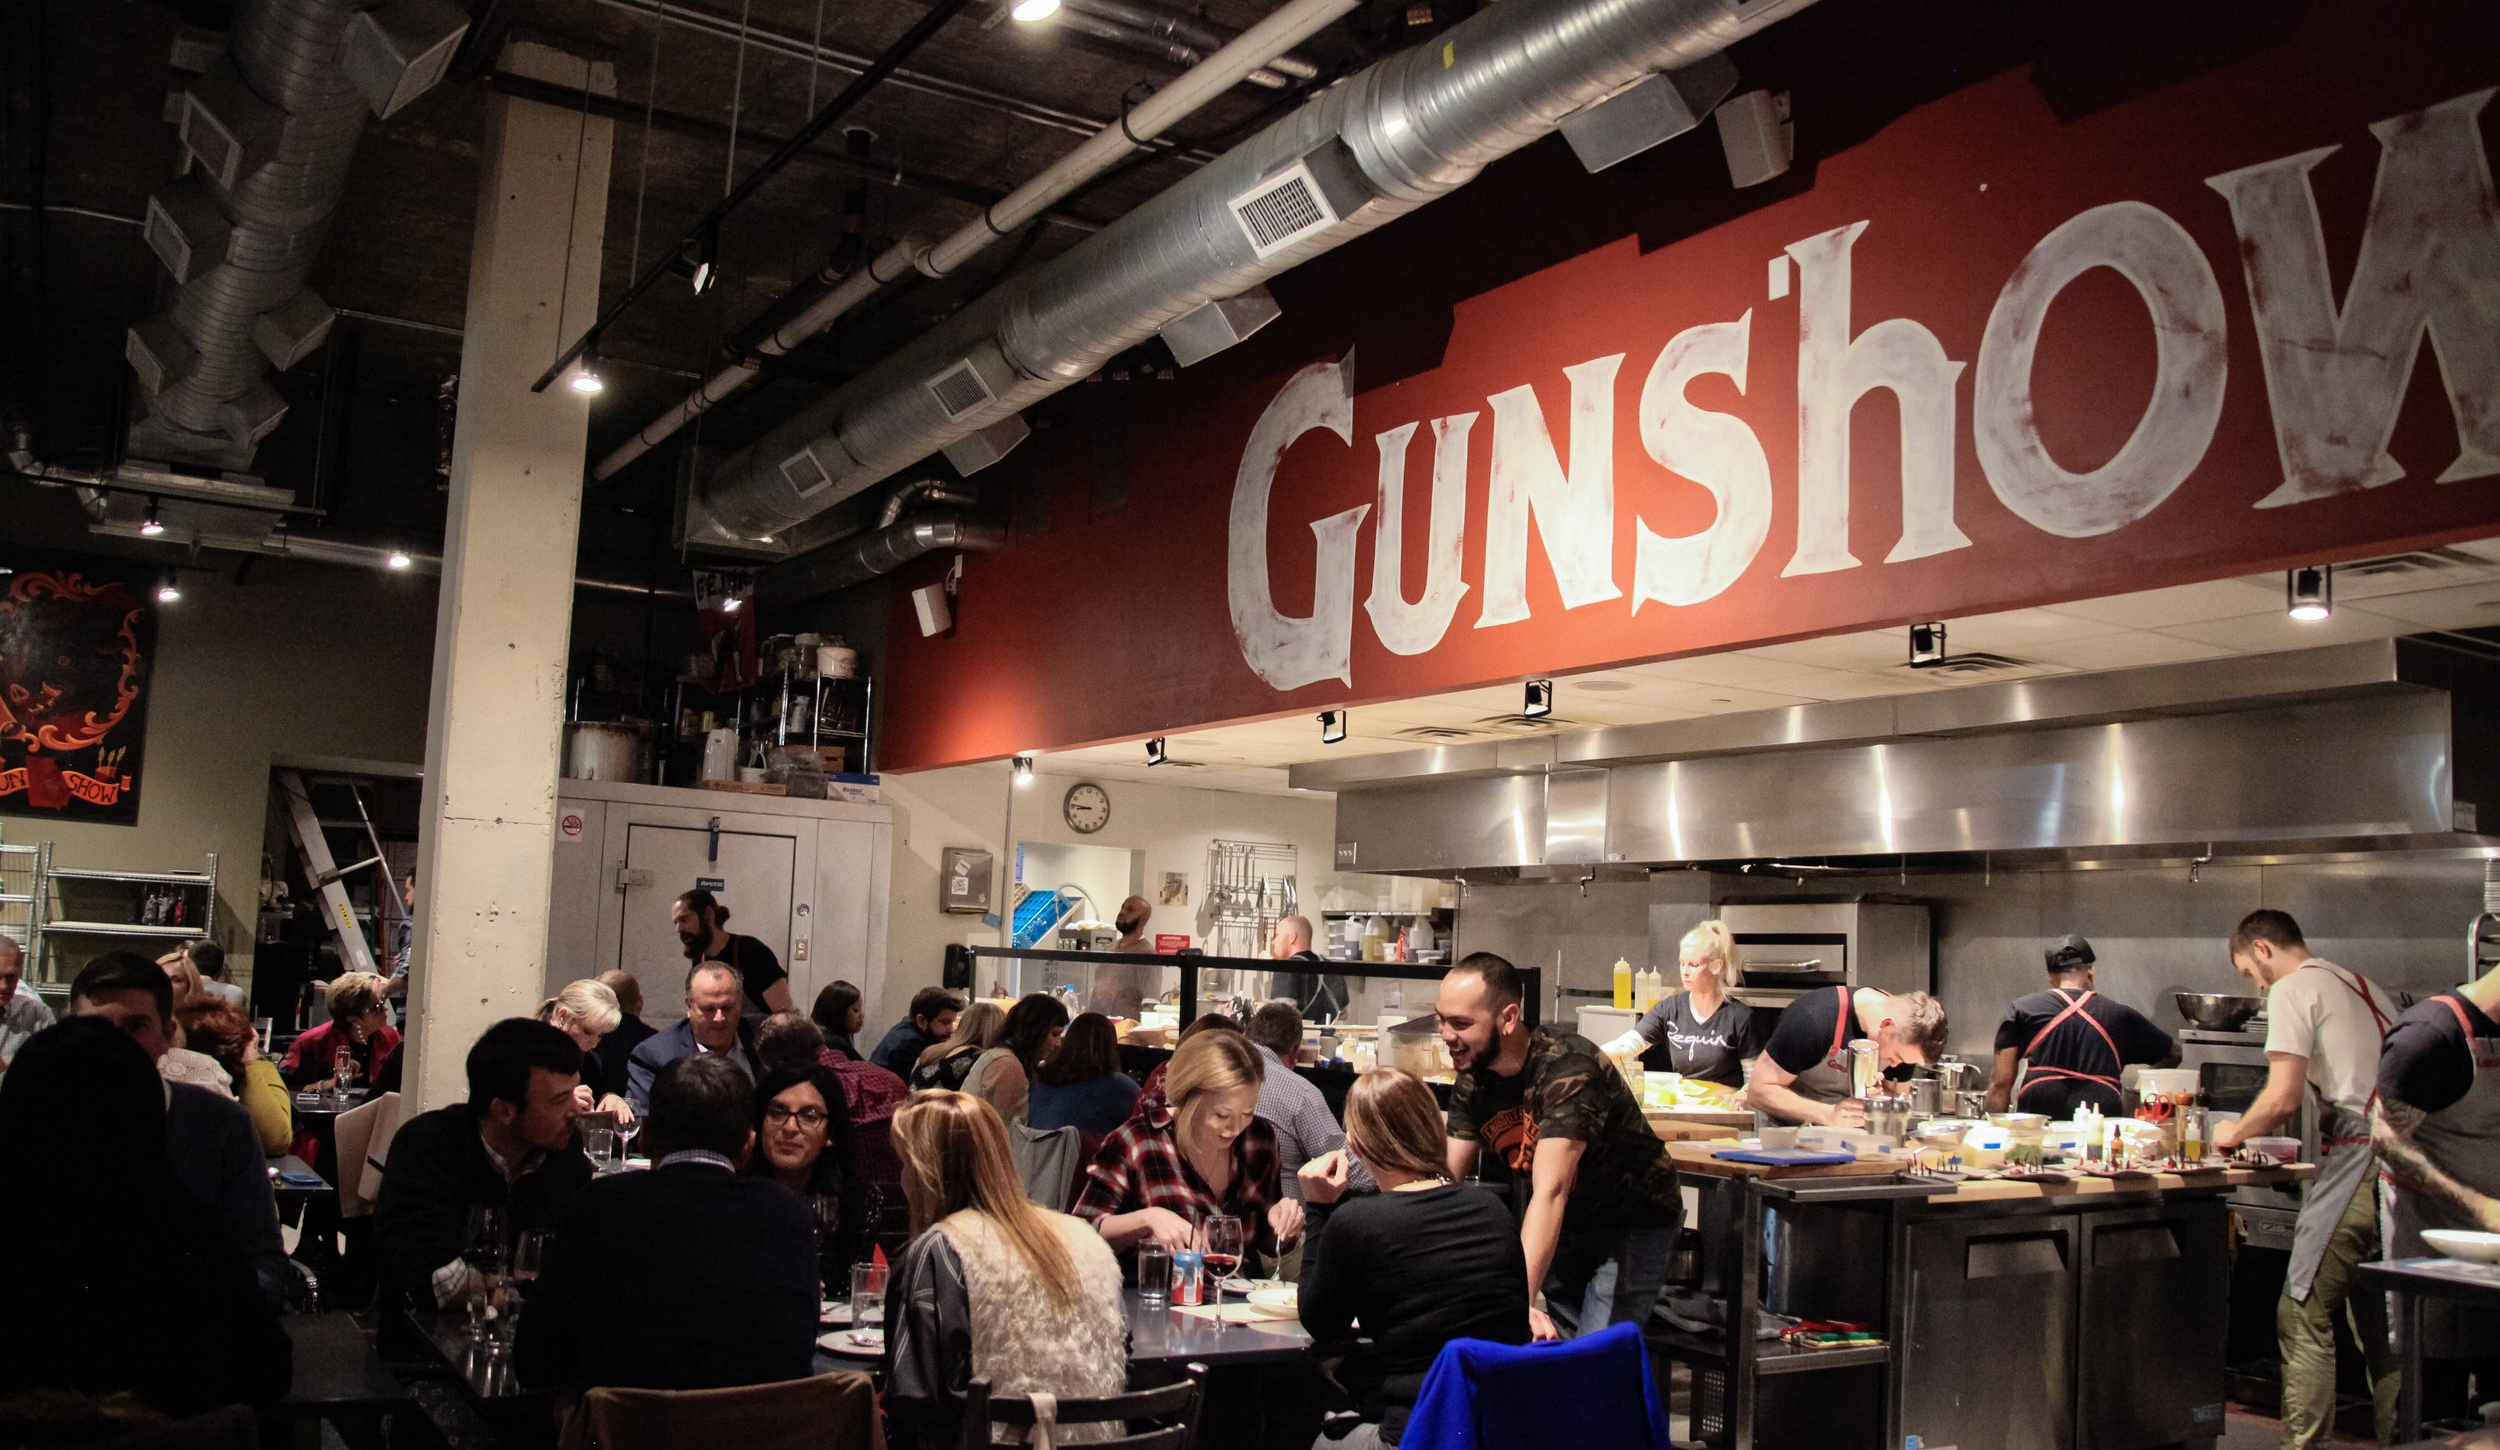 Chef Kevin Gillespie S Restaurant Gunshow Offers A Bold